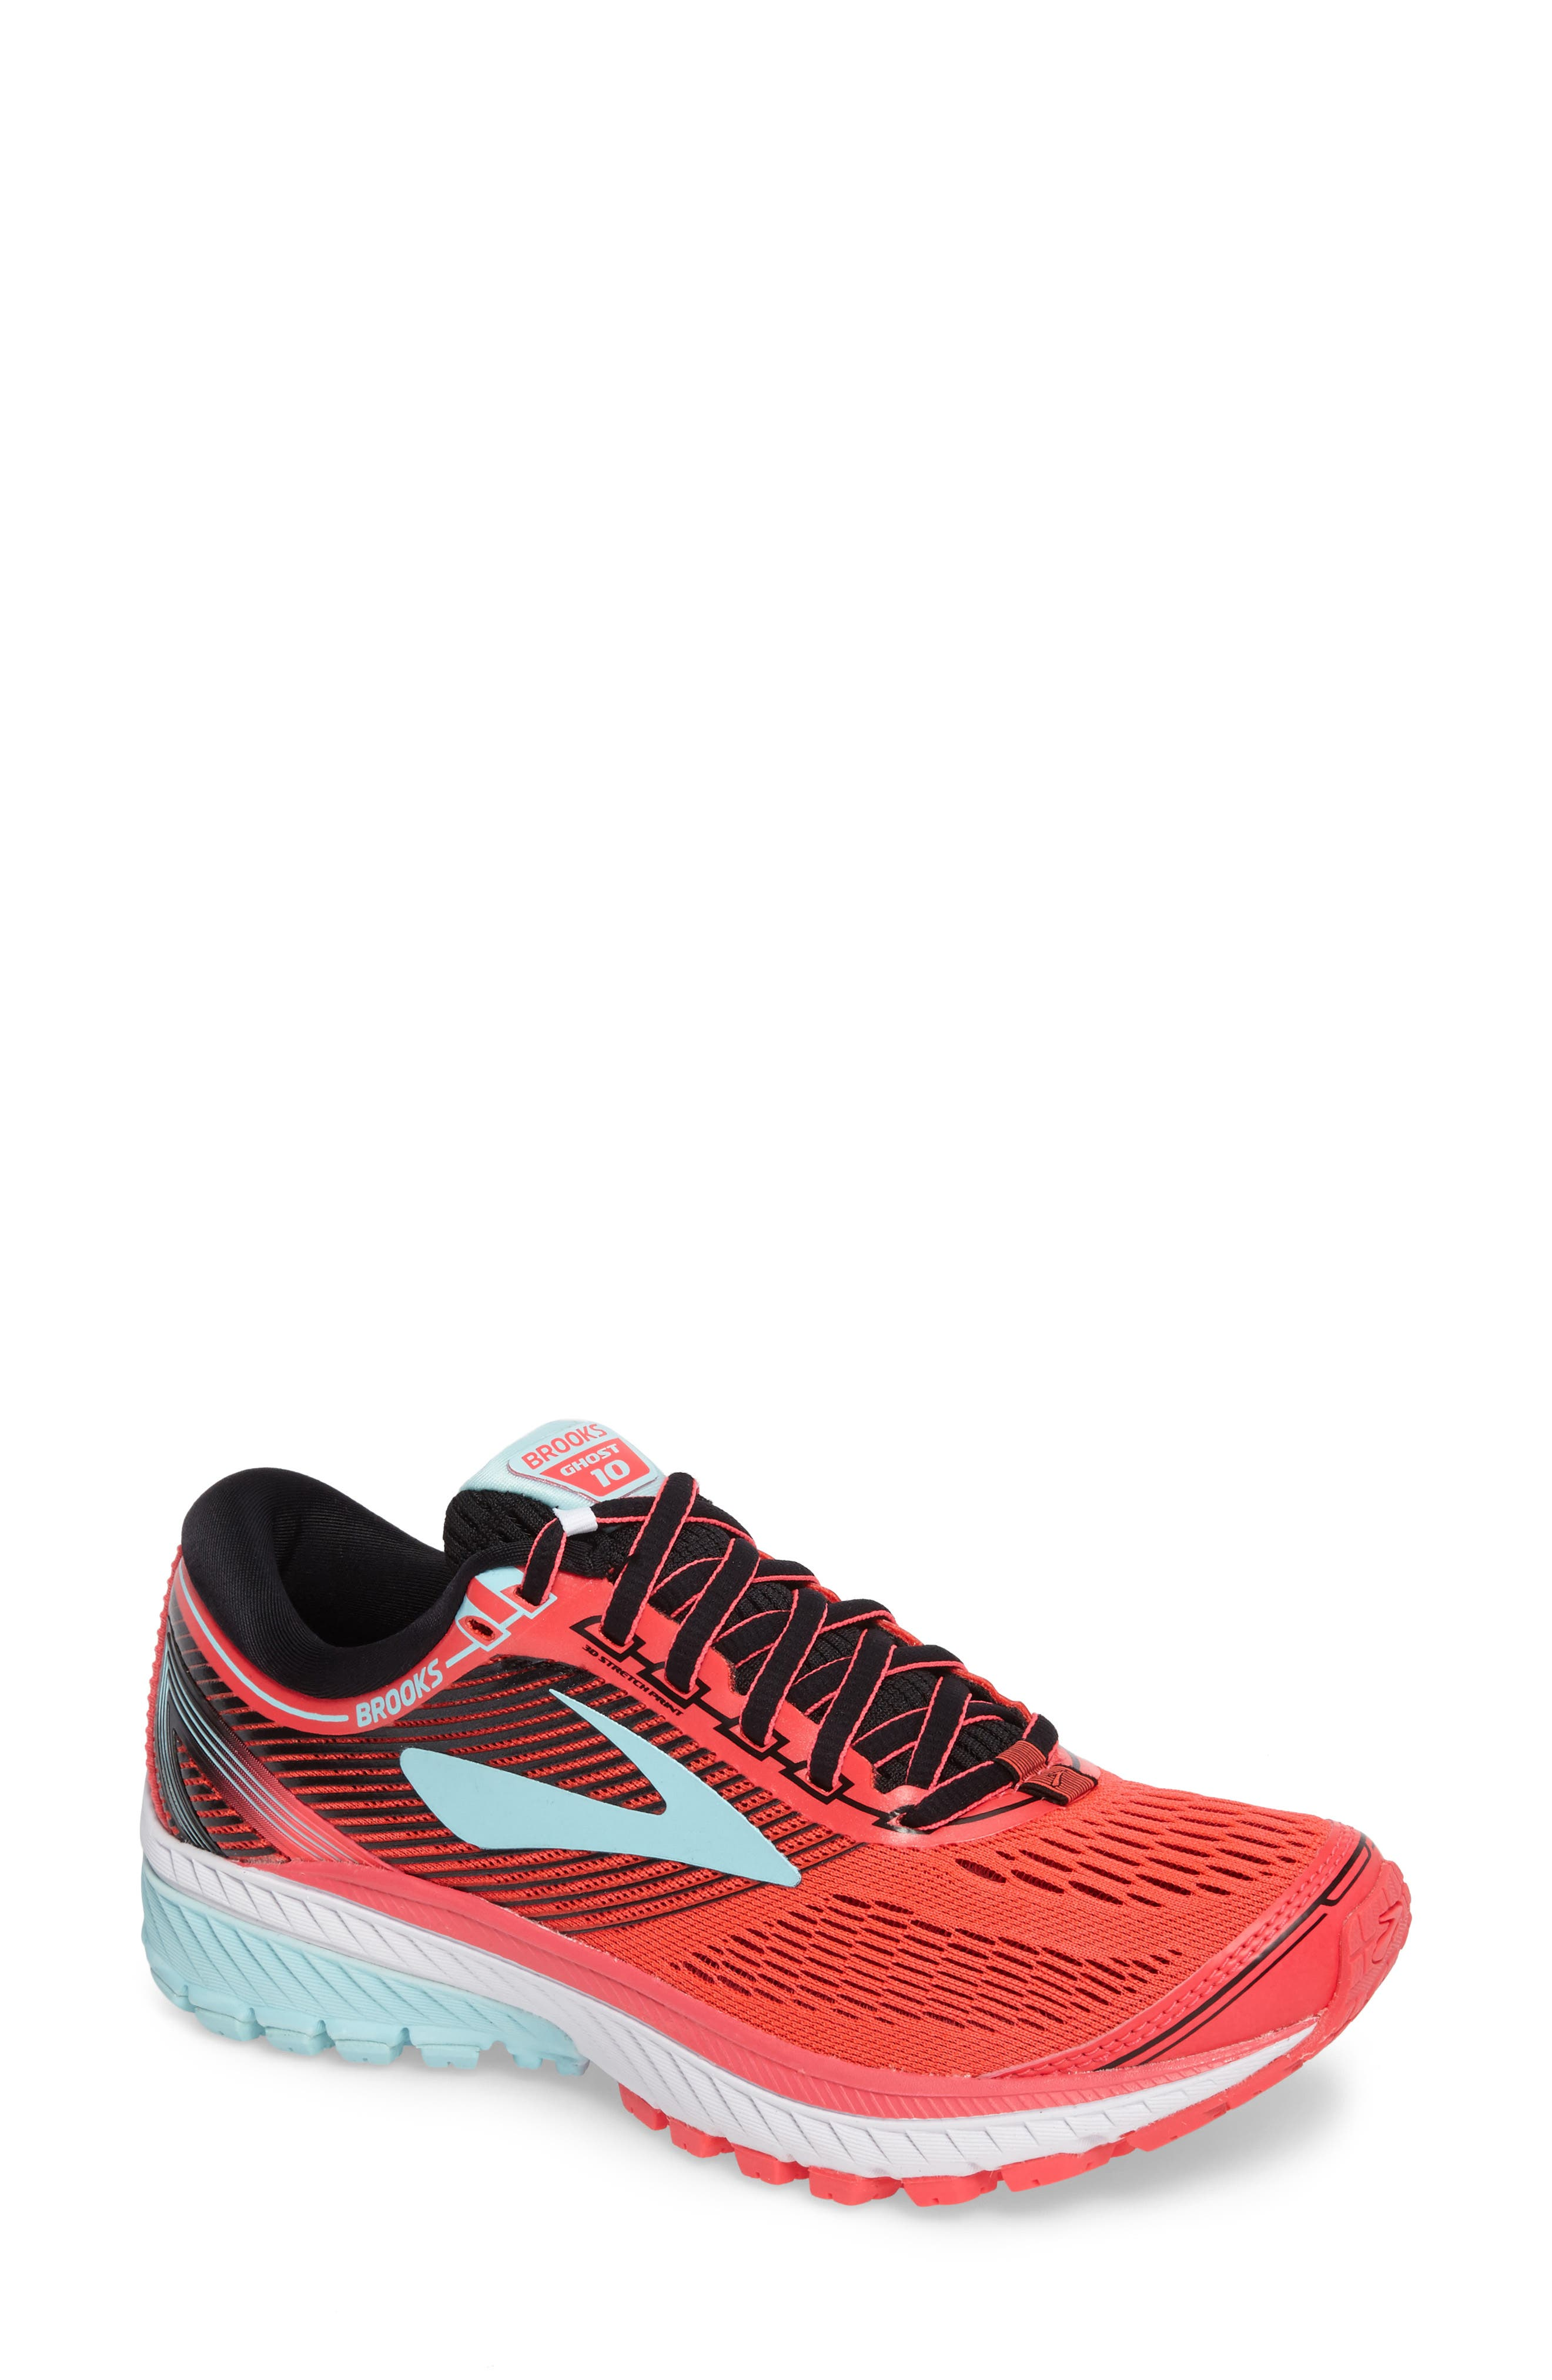 Ghost 10 Running Shoe,                             Main thumbnail 8, color,